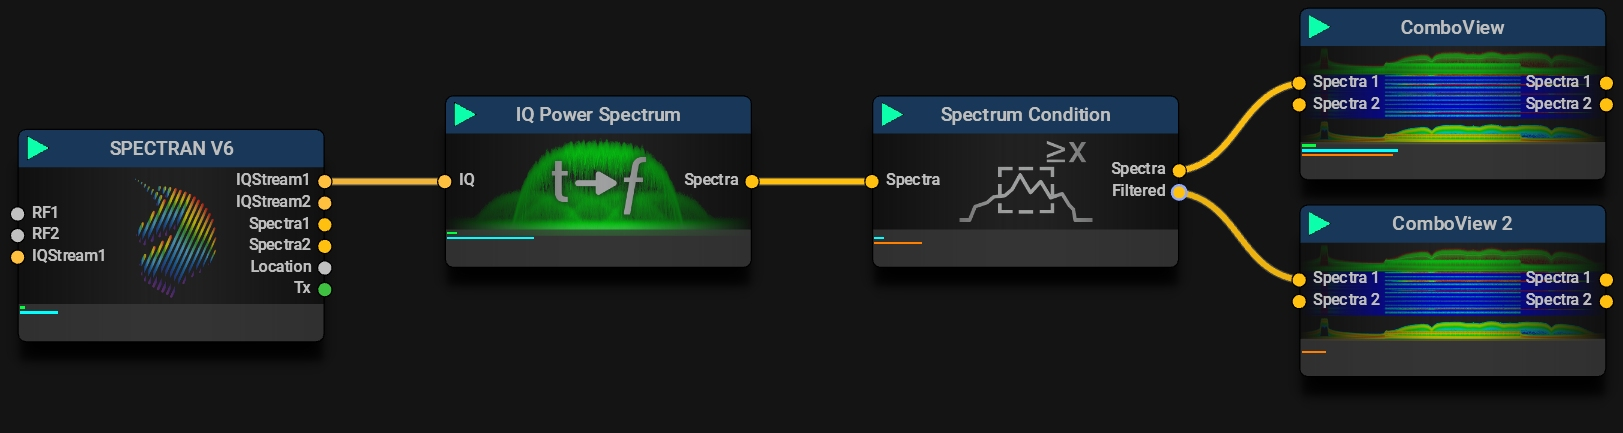 Spectrum Trigger   A typical Mission